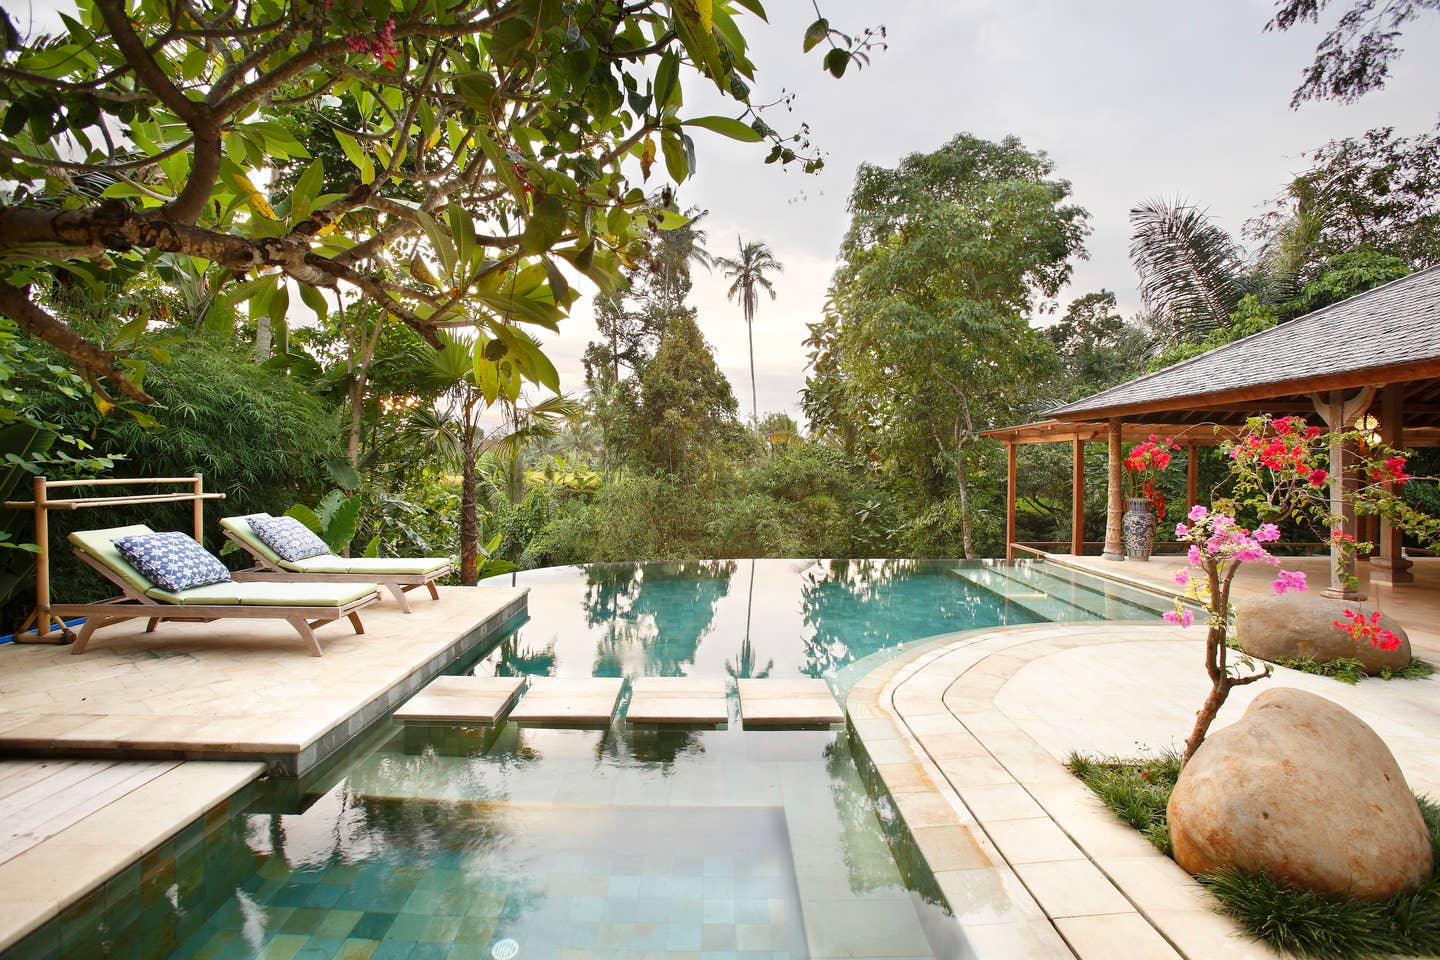 earth house villa in ubud, indonesia with outdoor pool and tropical view